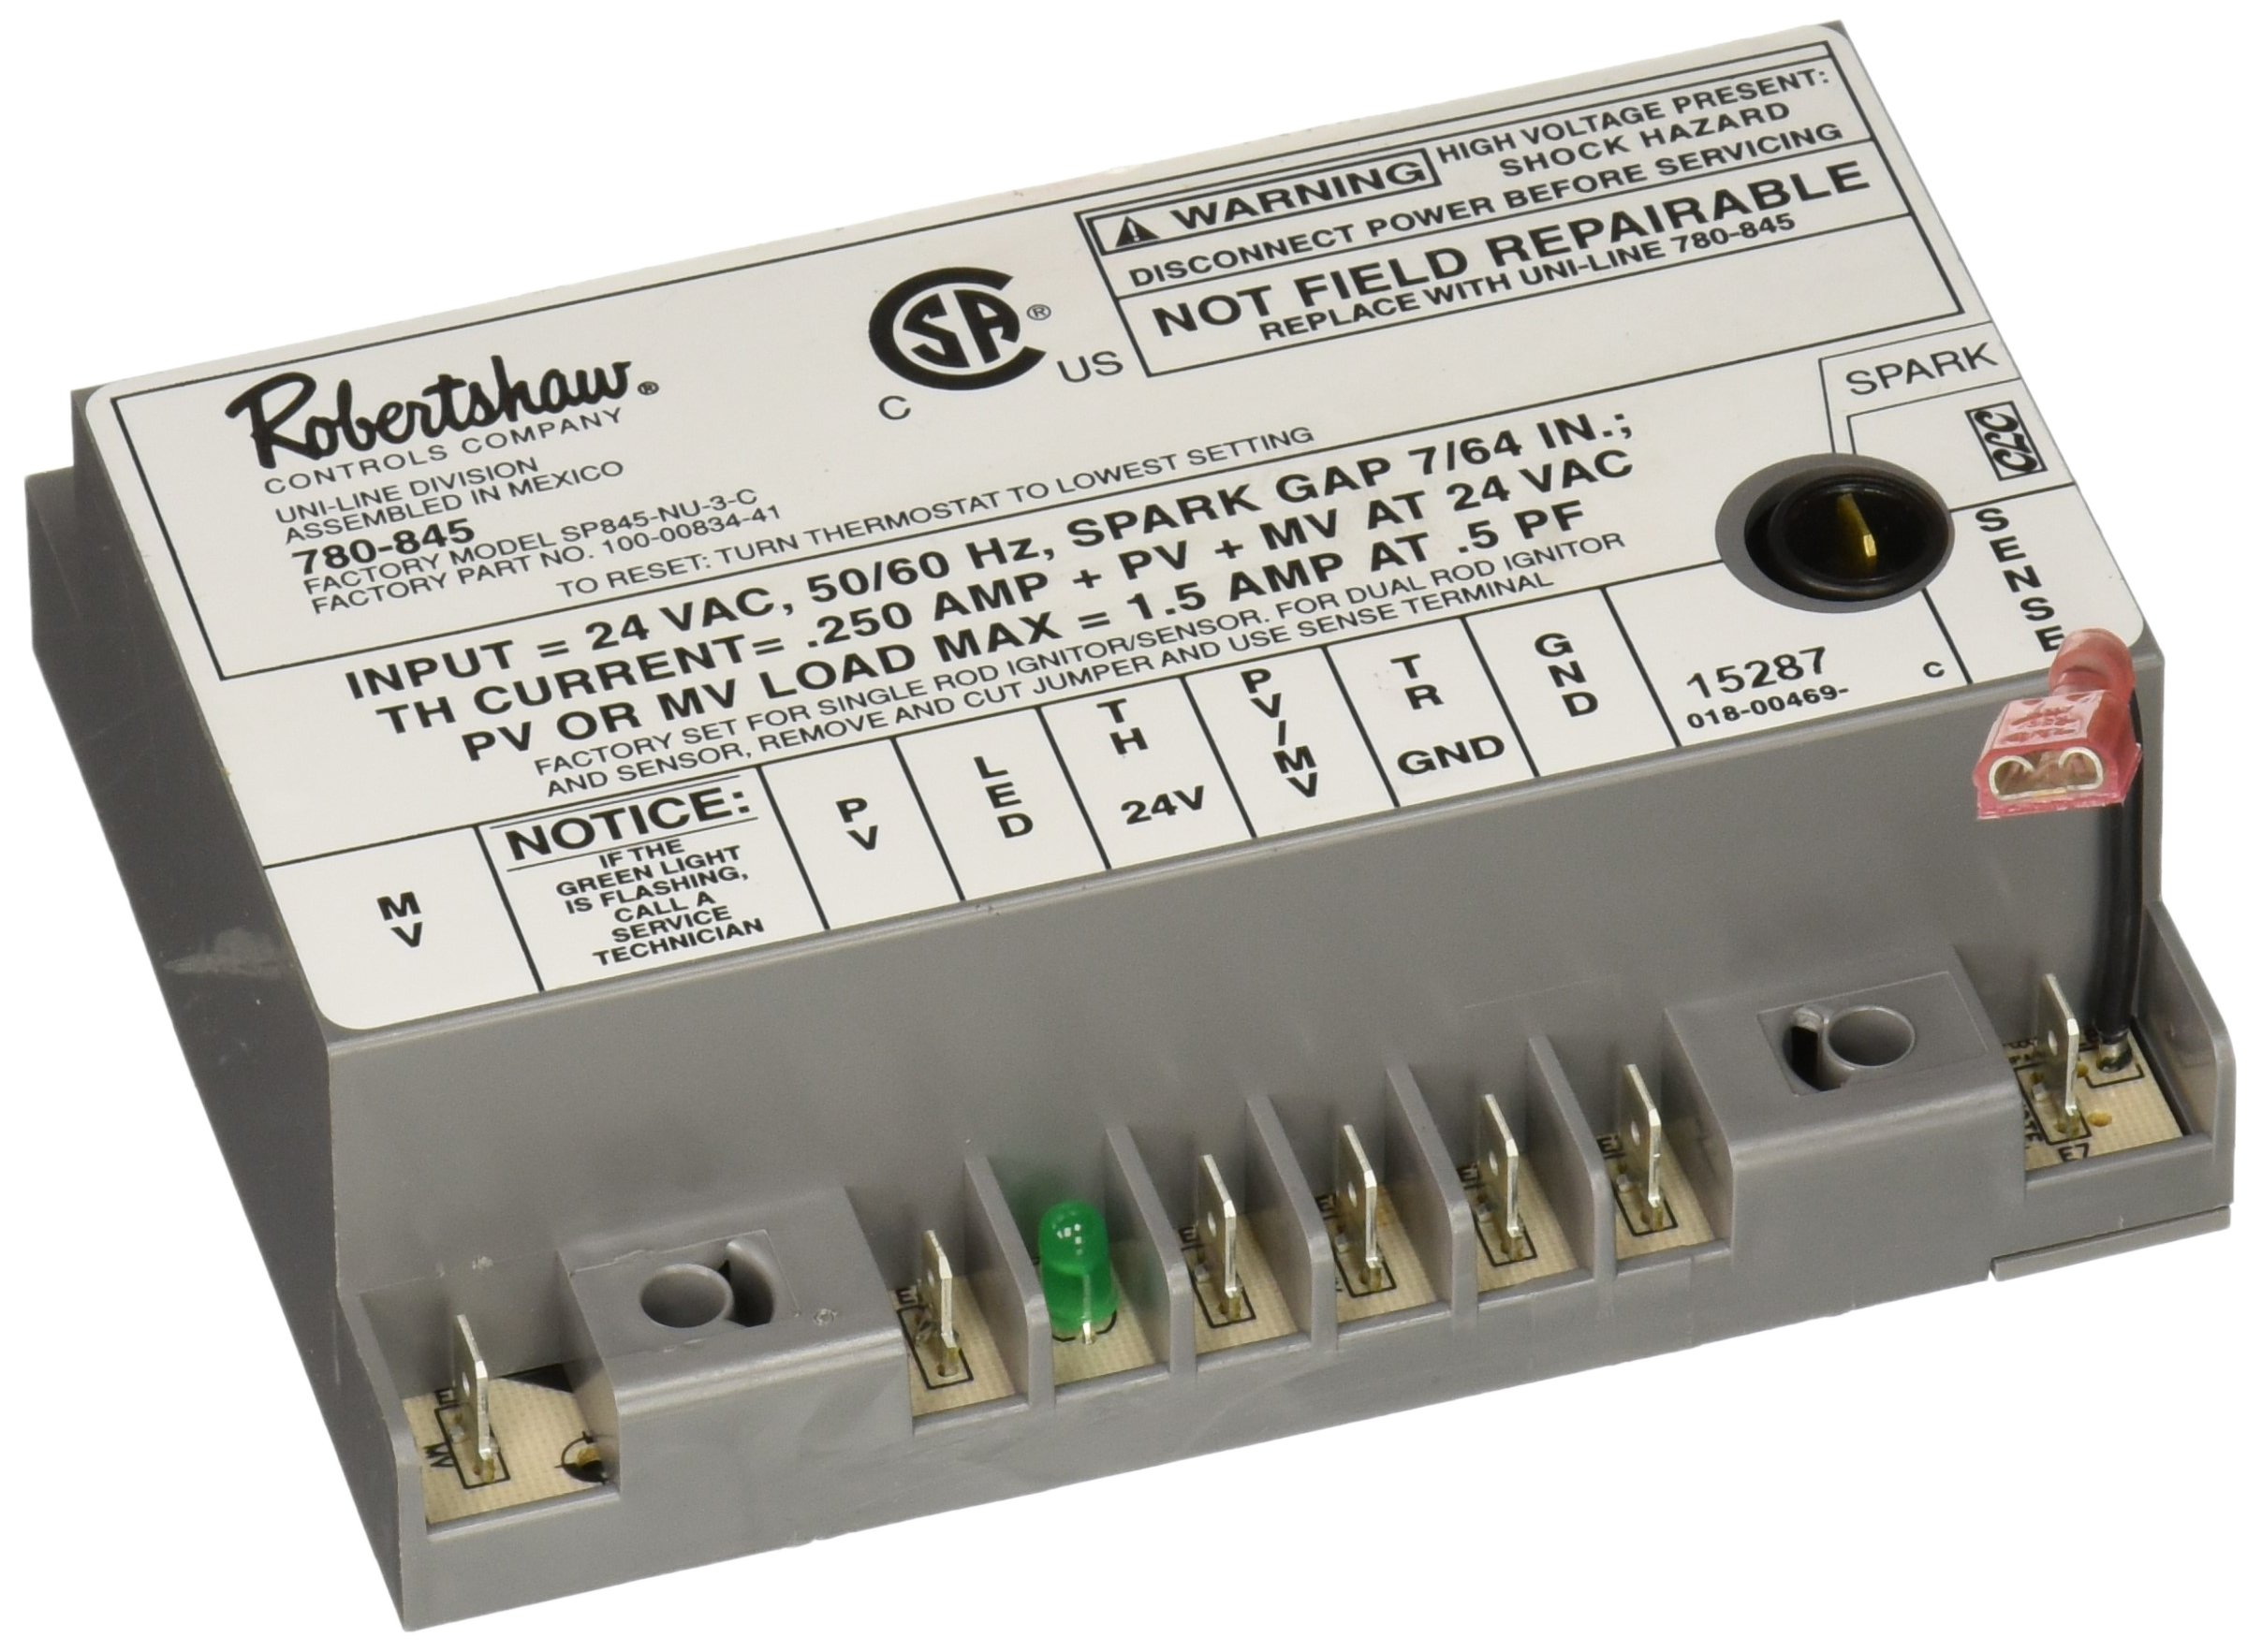 Robertshaw 780 845 Ignition Module Intermittent Pilot Current Sensing Lockout Relay 24v Home Improvement